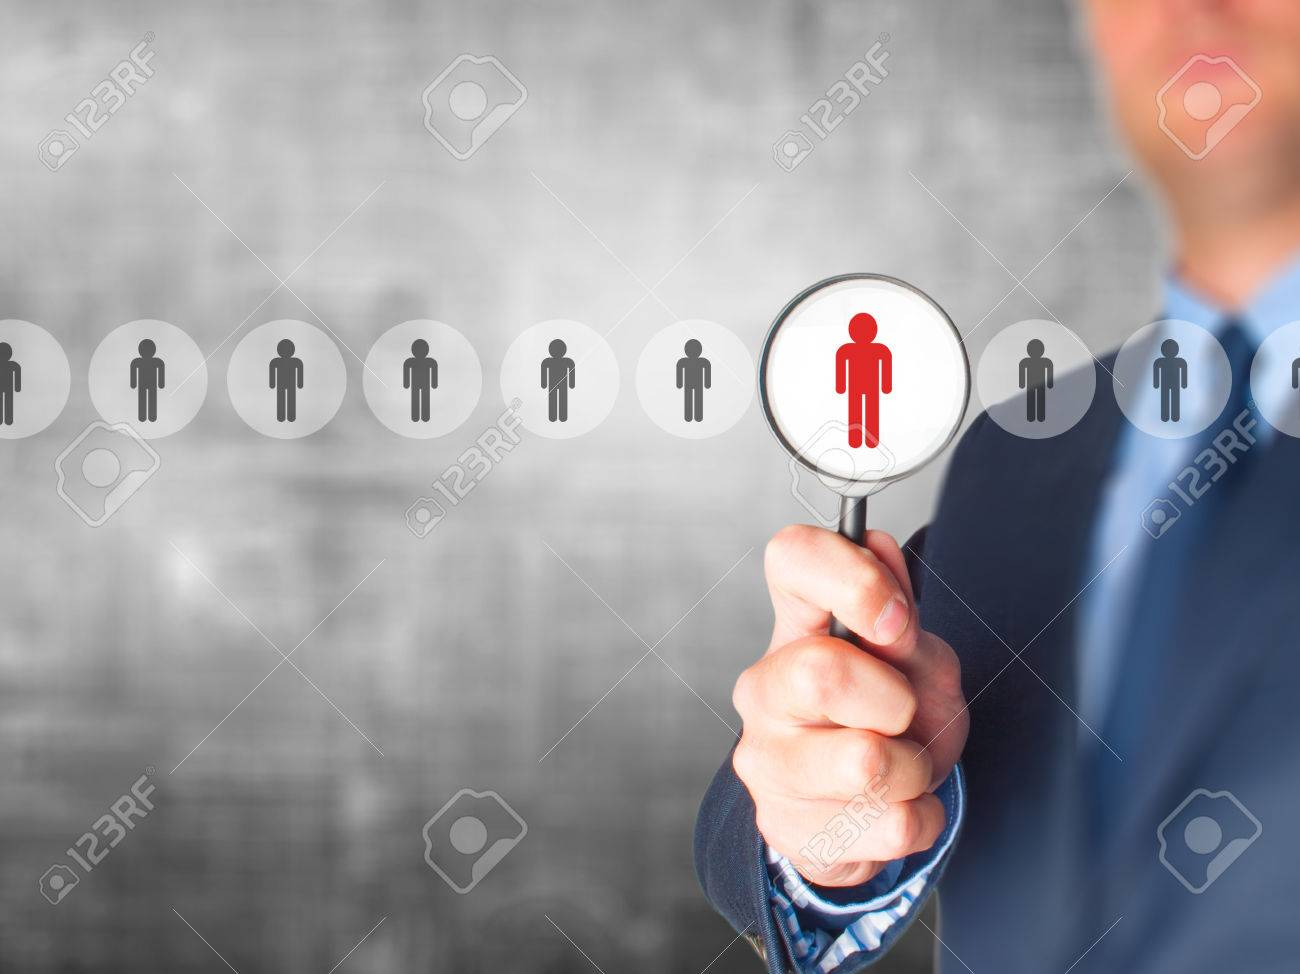 networking and recruitment businessman magnifying glass networking and recruitment businessman magnifying glass human resources crm data mining